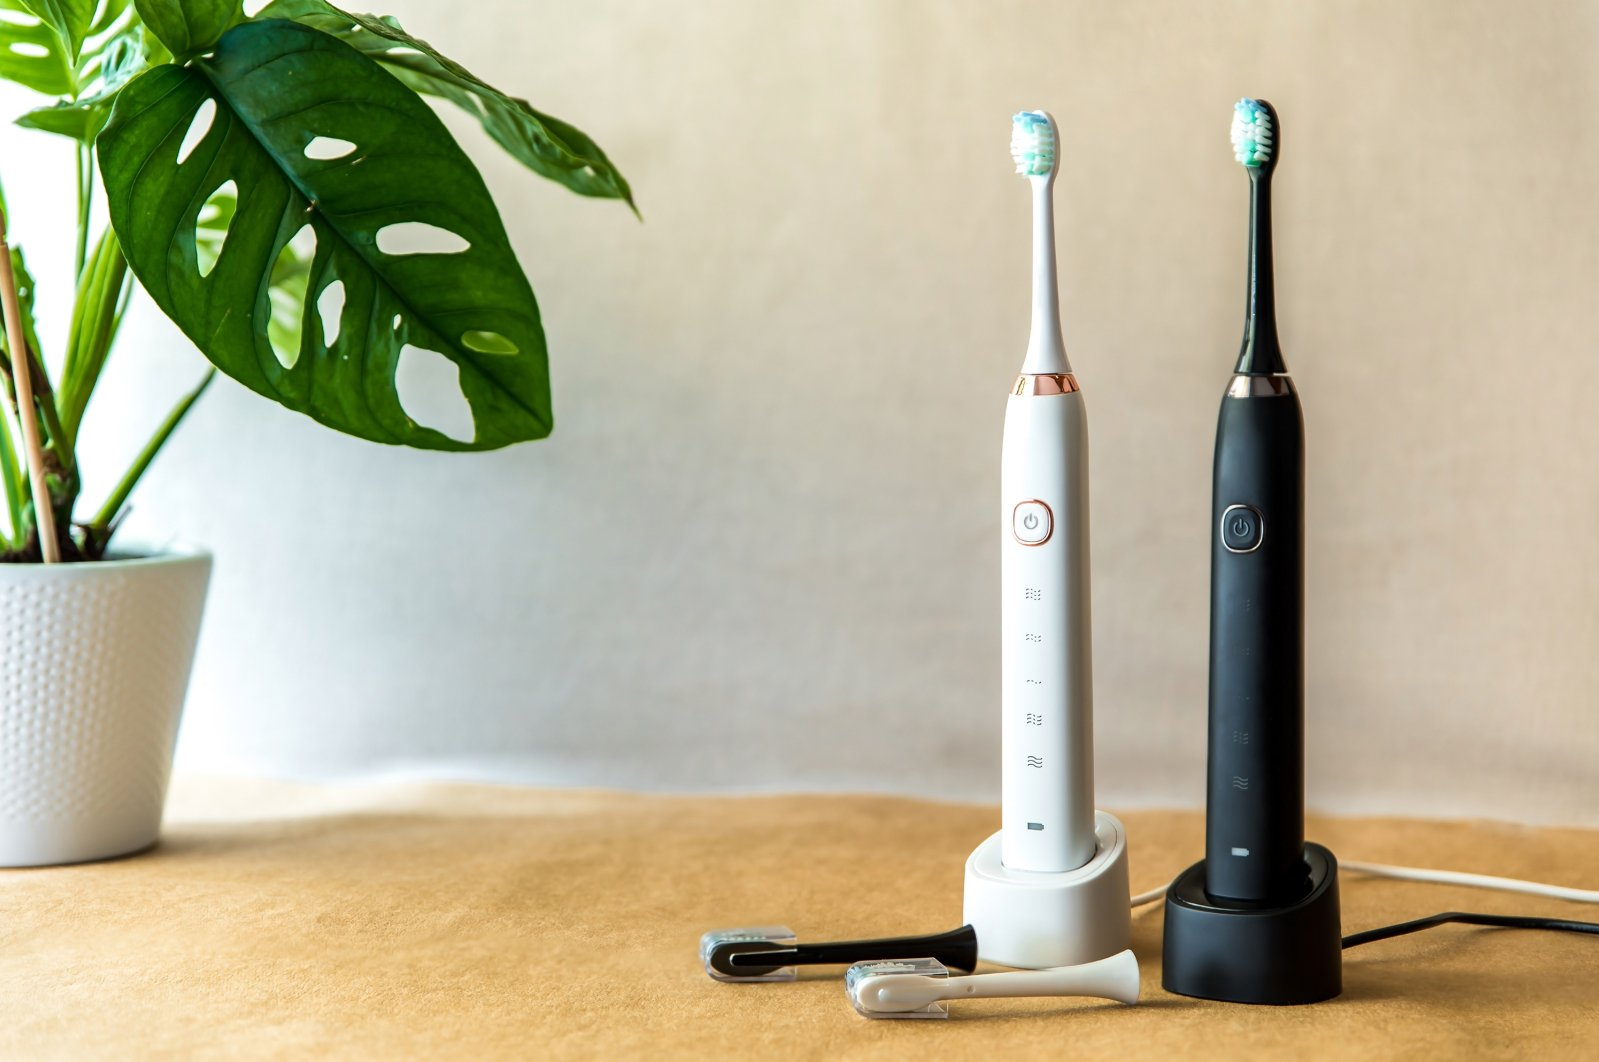 Smart toothbrushes are suited to people who are older or limited in mobility, but they're often best off in the hands of someone who enjoys using technology. (Shutterstock Photo)